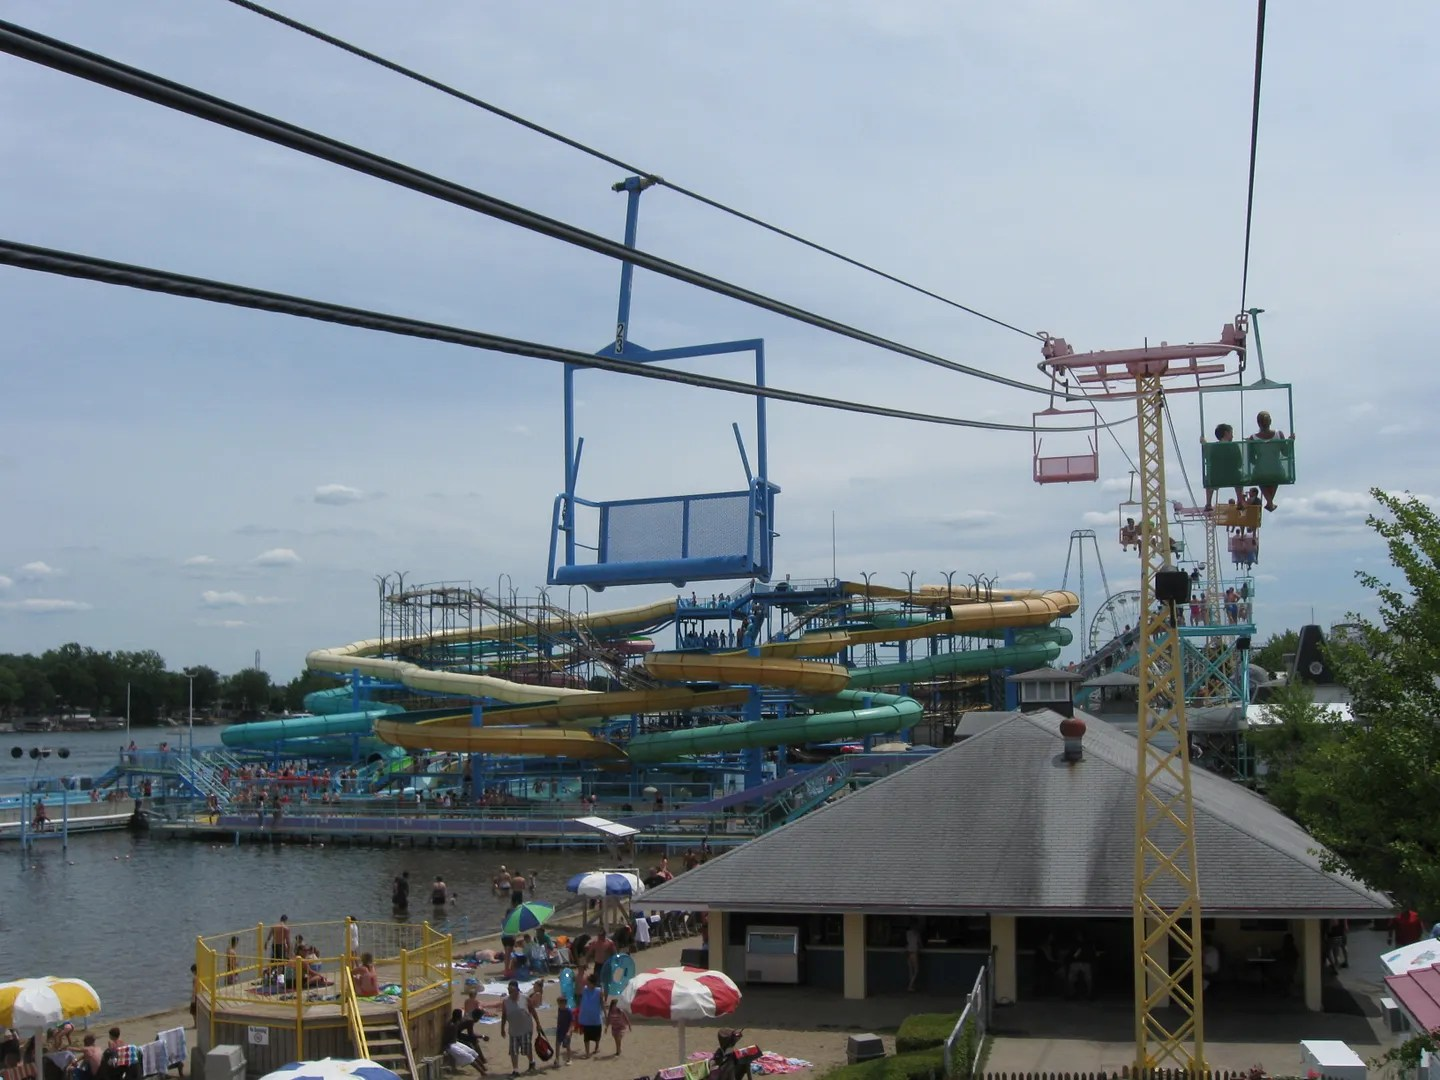 Skylift @ Indiana Beach